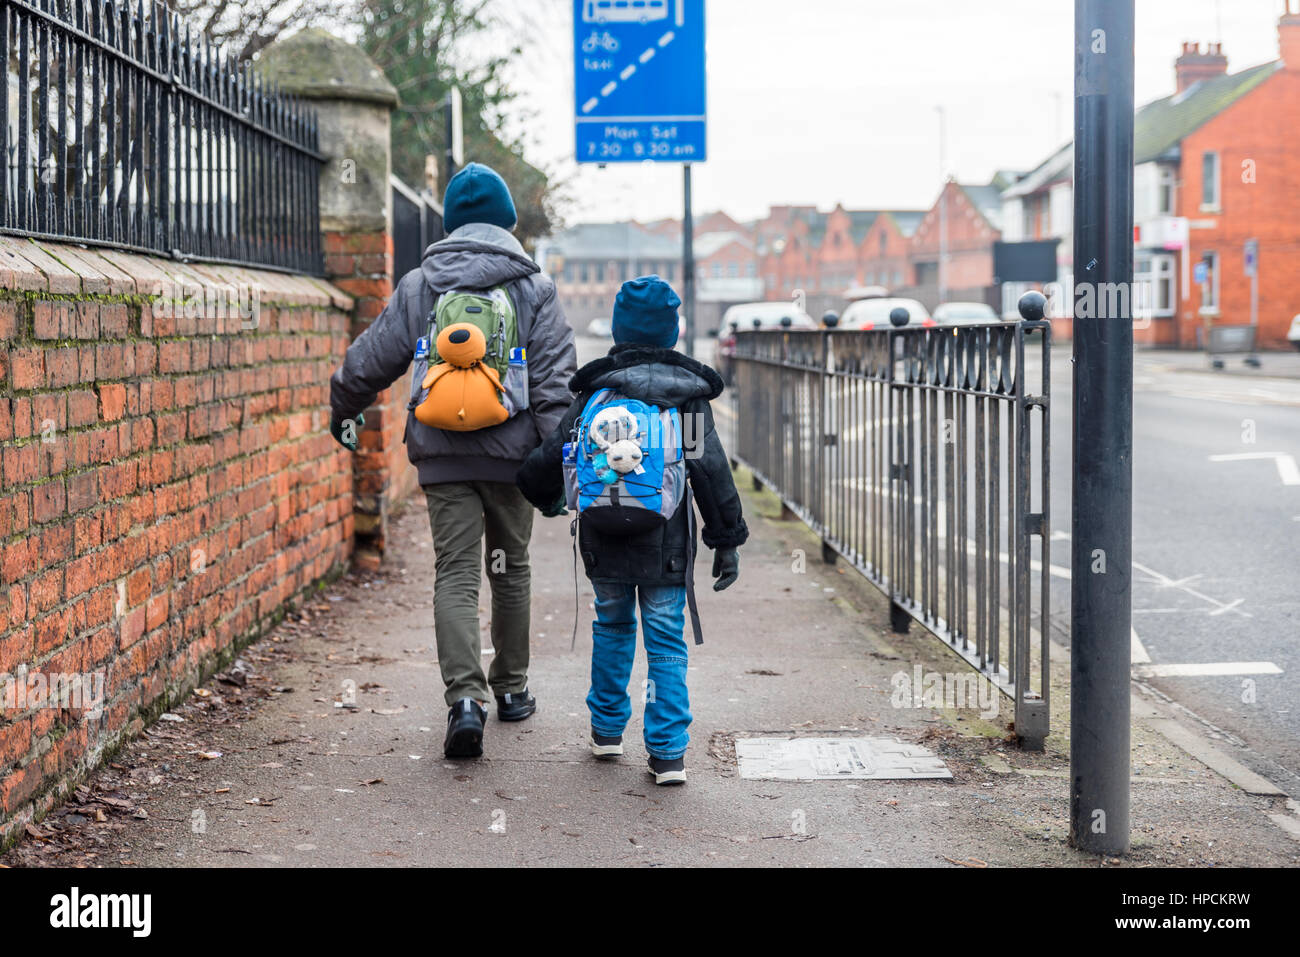 Travel concept of two boys with backpacks going forward. - Stock Image